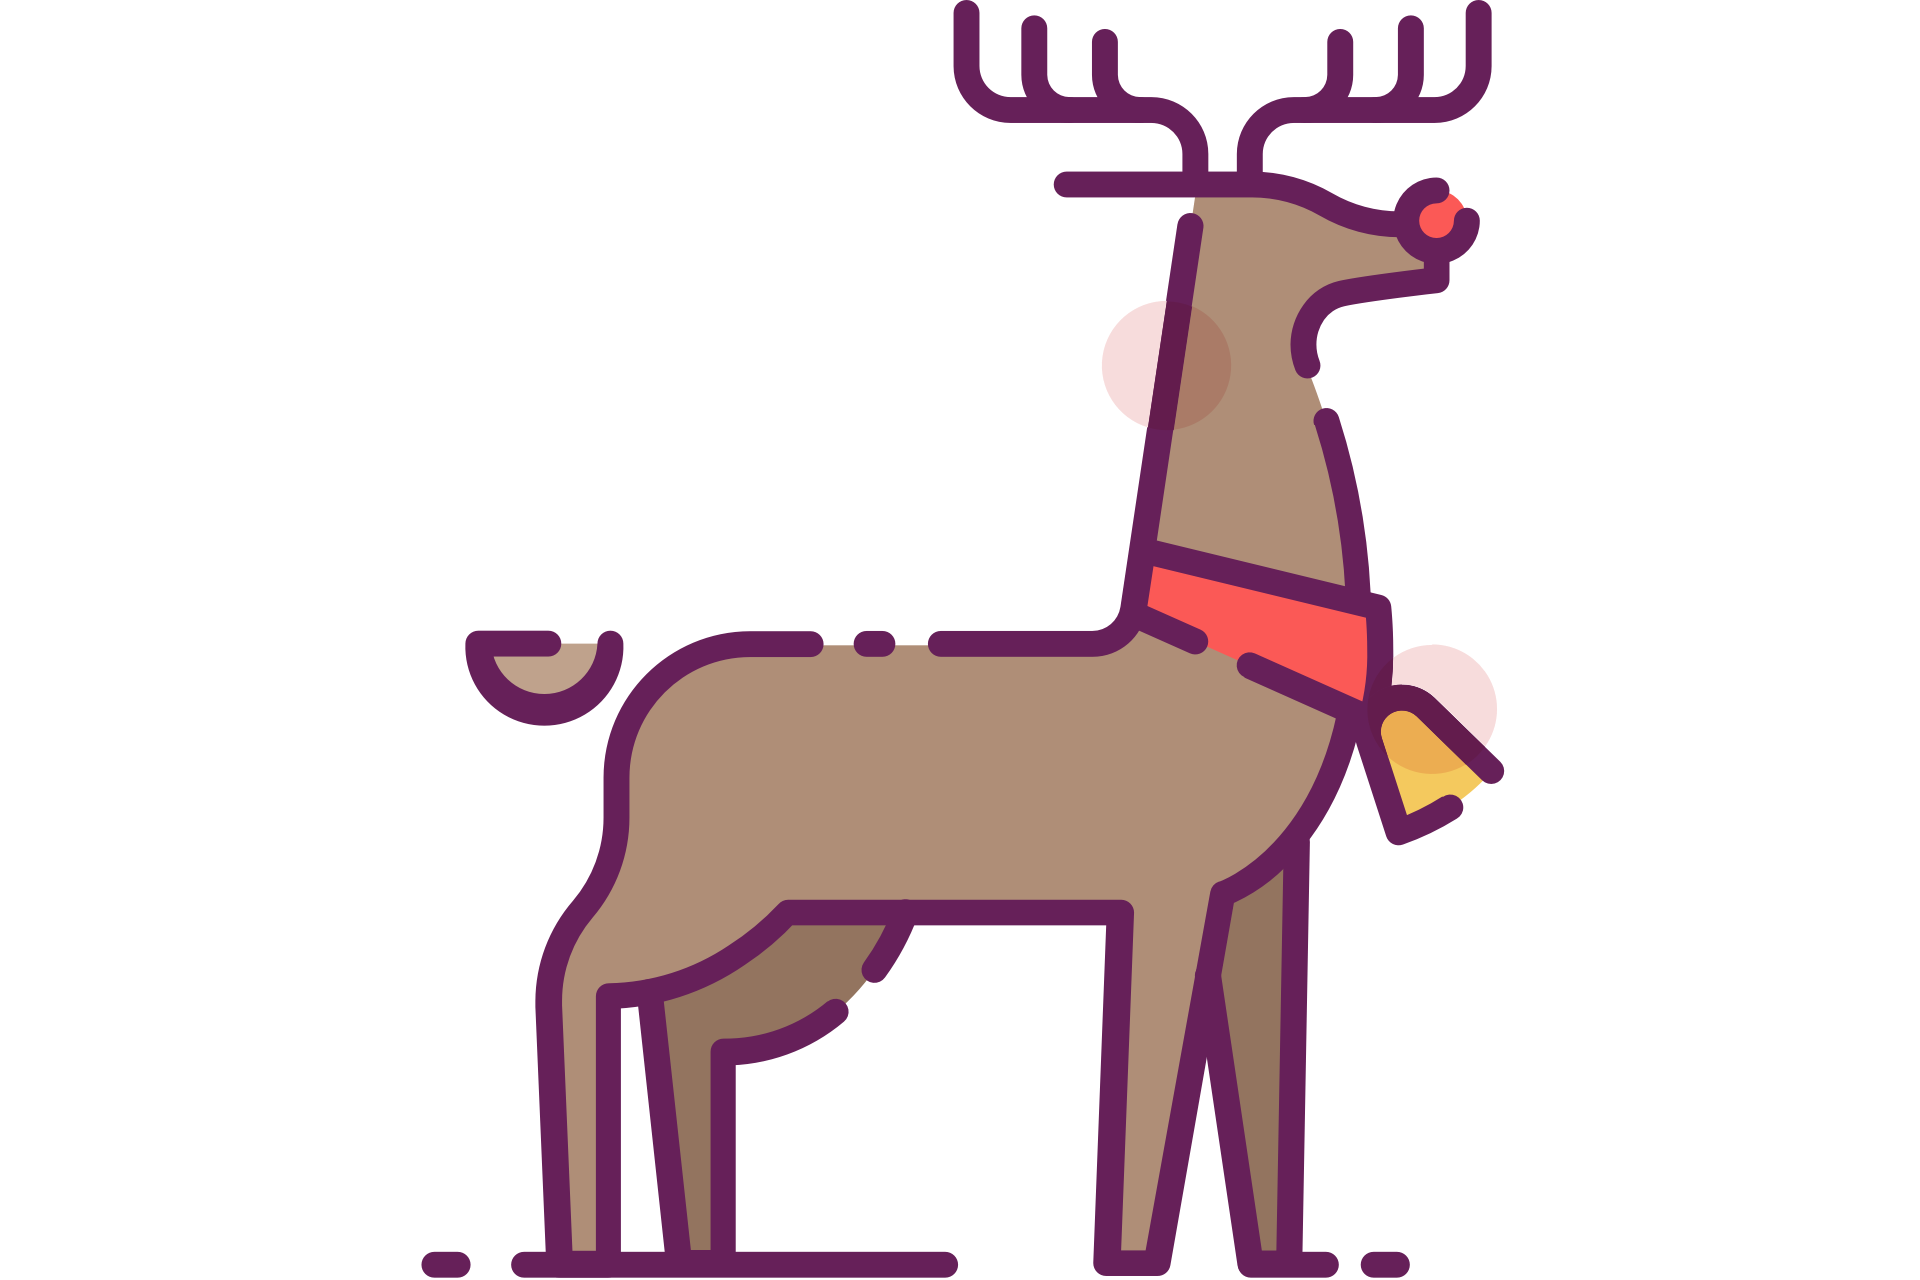 Rudolph clipart baby. Reindeer with red nose